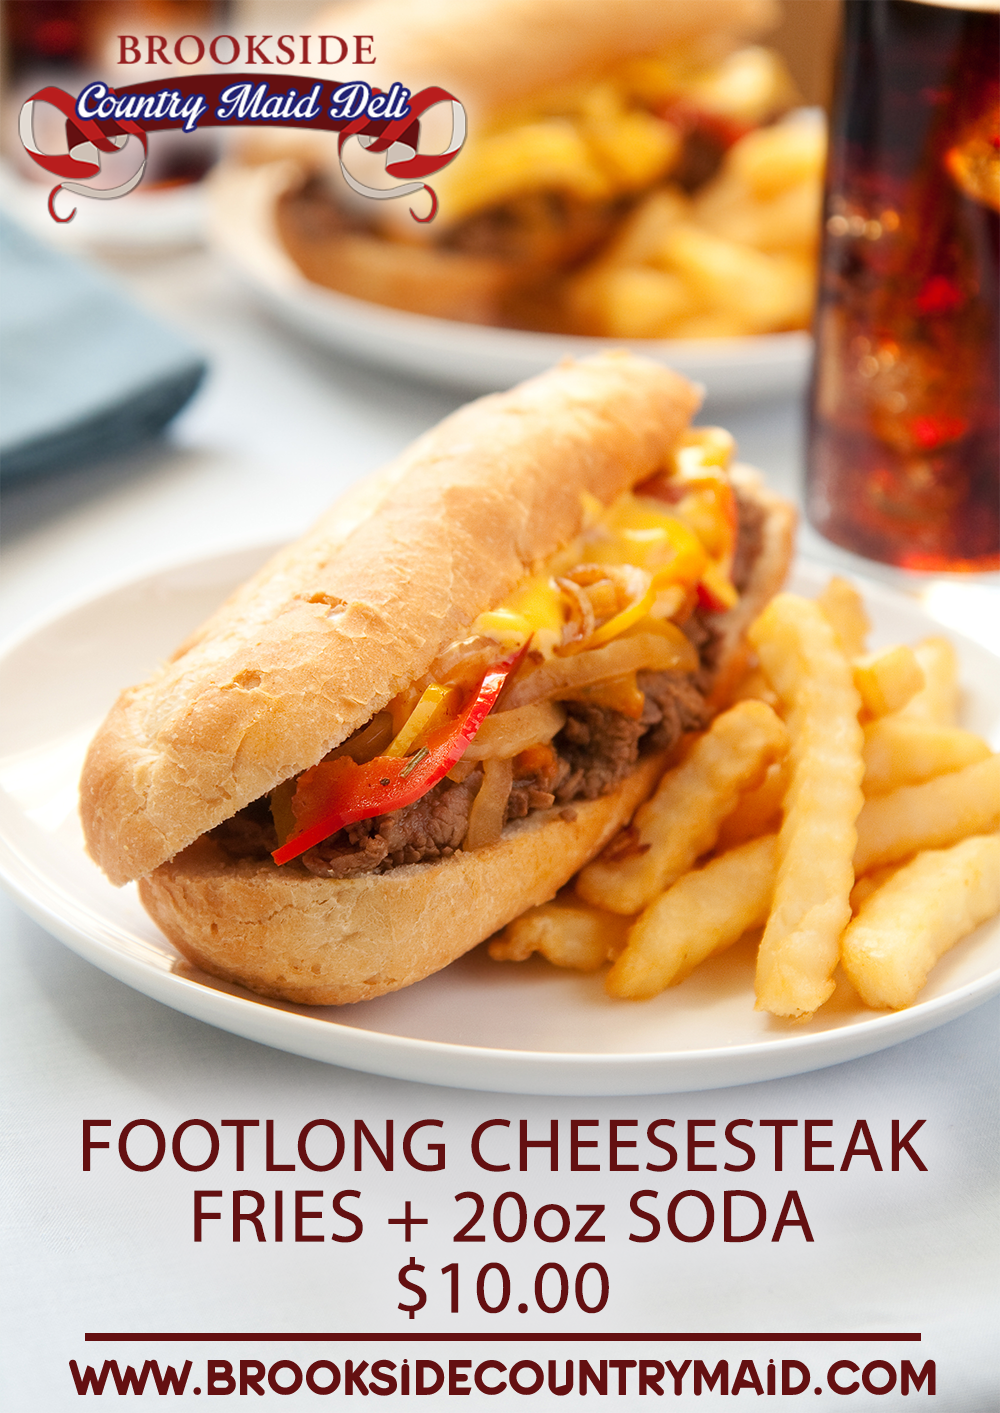 Footlong cheesesteak, fries and 20 ounce soda $10.00. www.brooksidecountrymaid.com